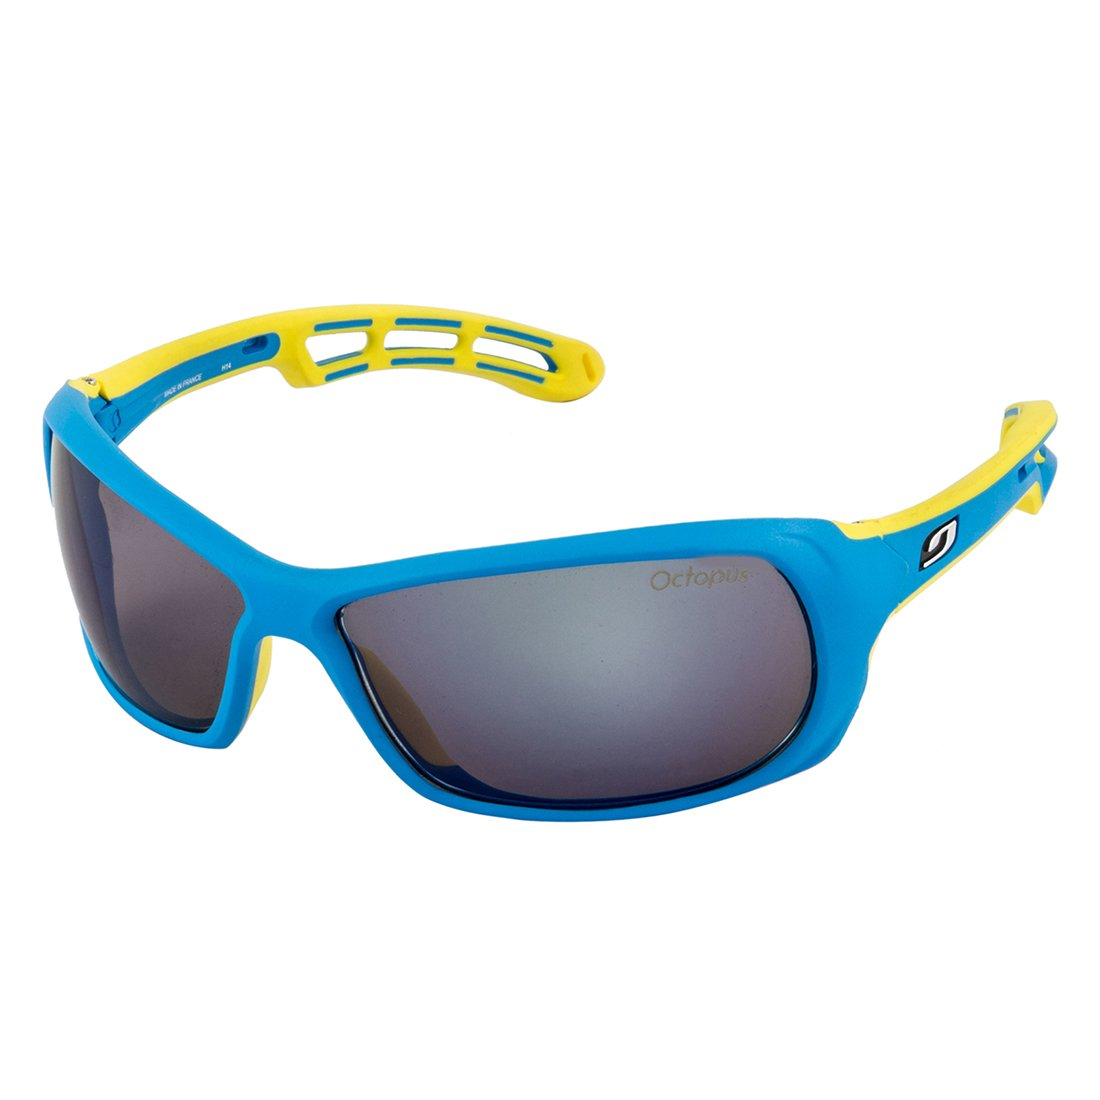 Julbo Swell Sunglasses Octopus multi-coloured blue yellow Size Taille L   Amazon.co.uk  Sports   Outdoors 1703d7ebd789